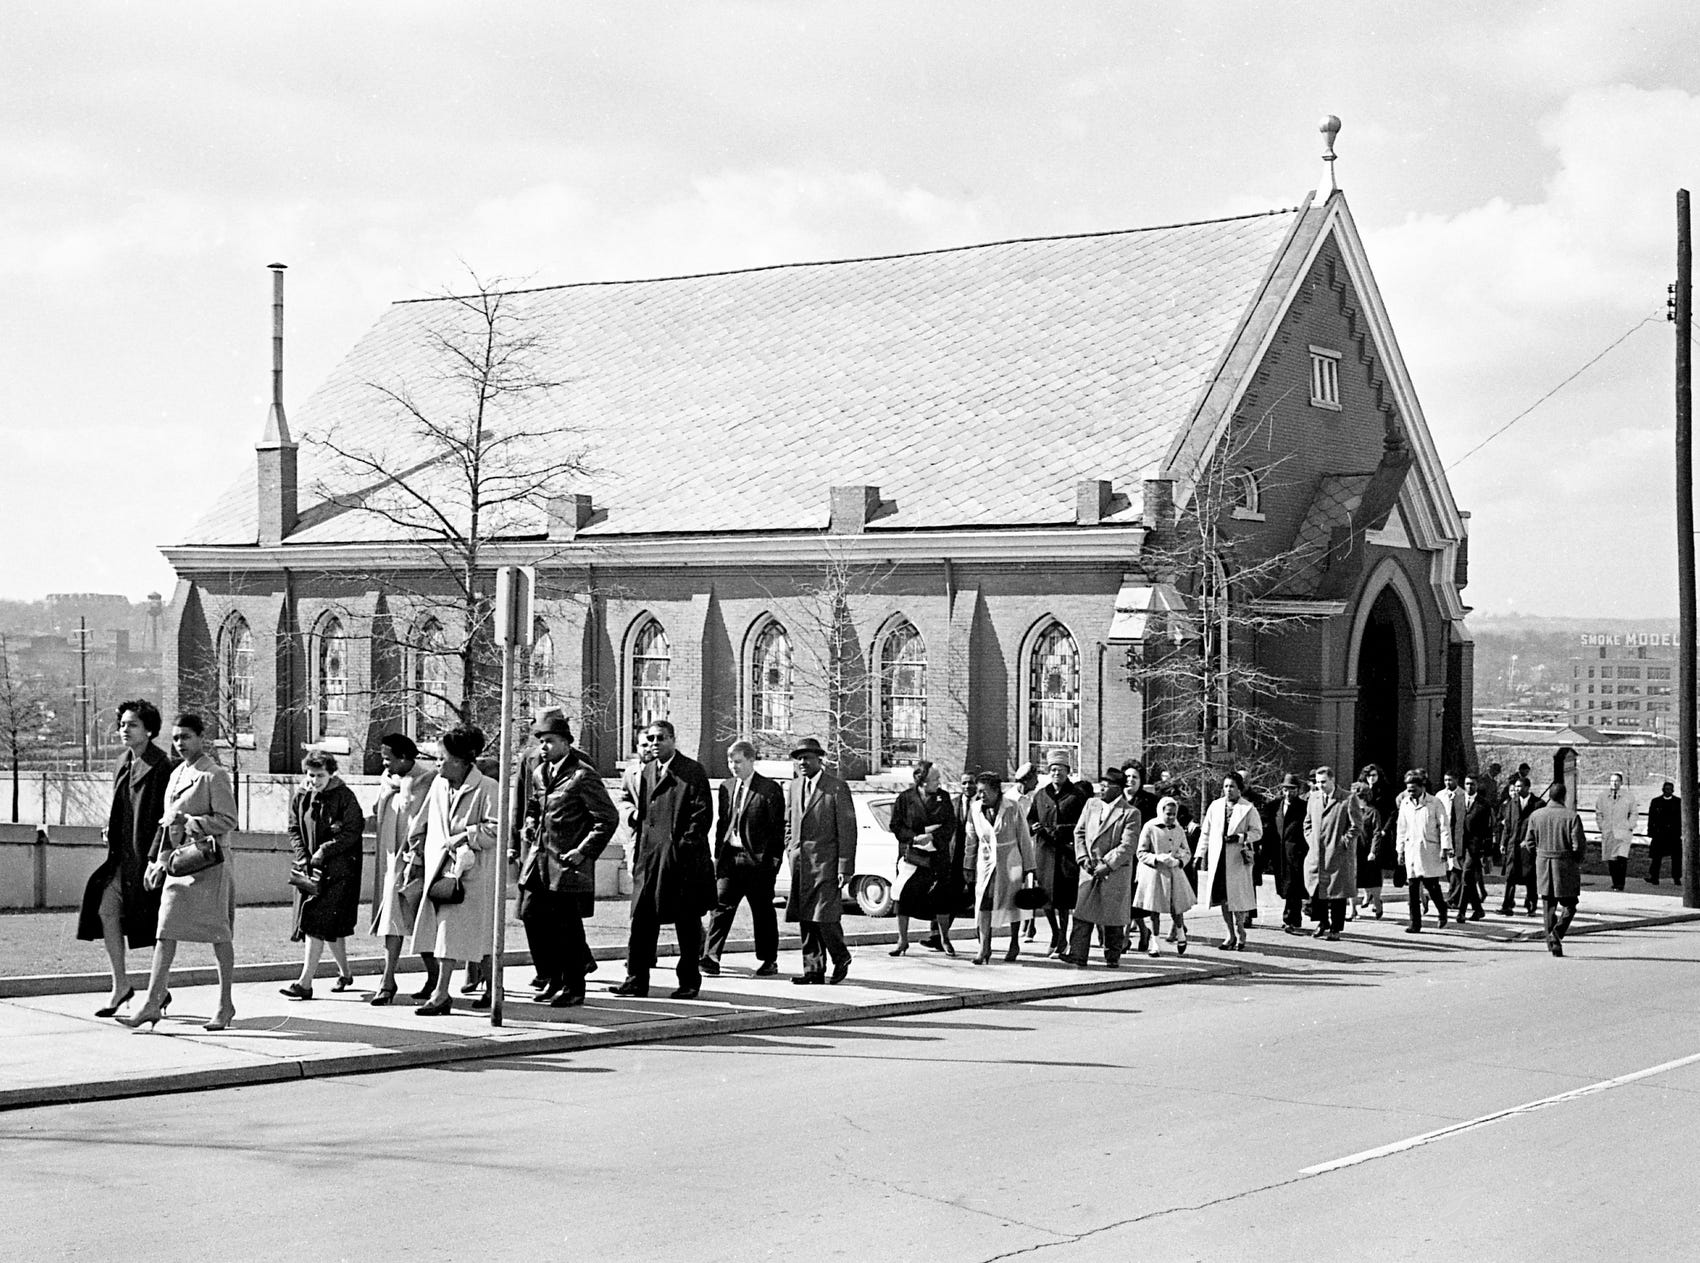 About 60 black and white demonstrators leave the First Baptist Church at Eighth Avenue North to march two-and-a-half blocks to protest the segregation policy of the YMCA building Feb. 24, 1963.